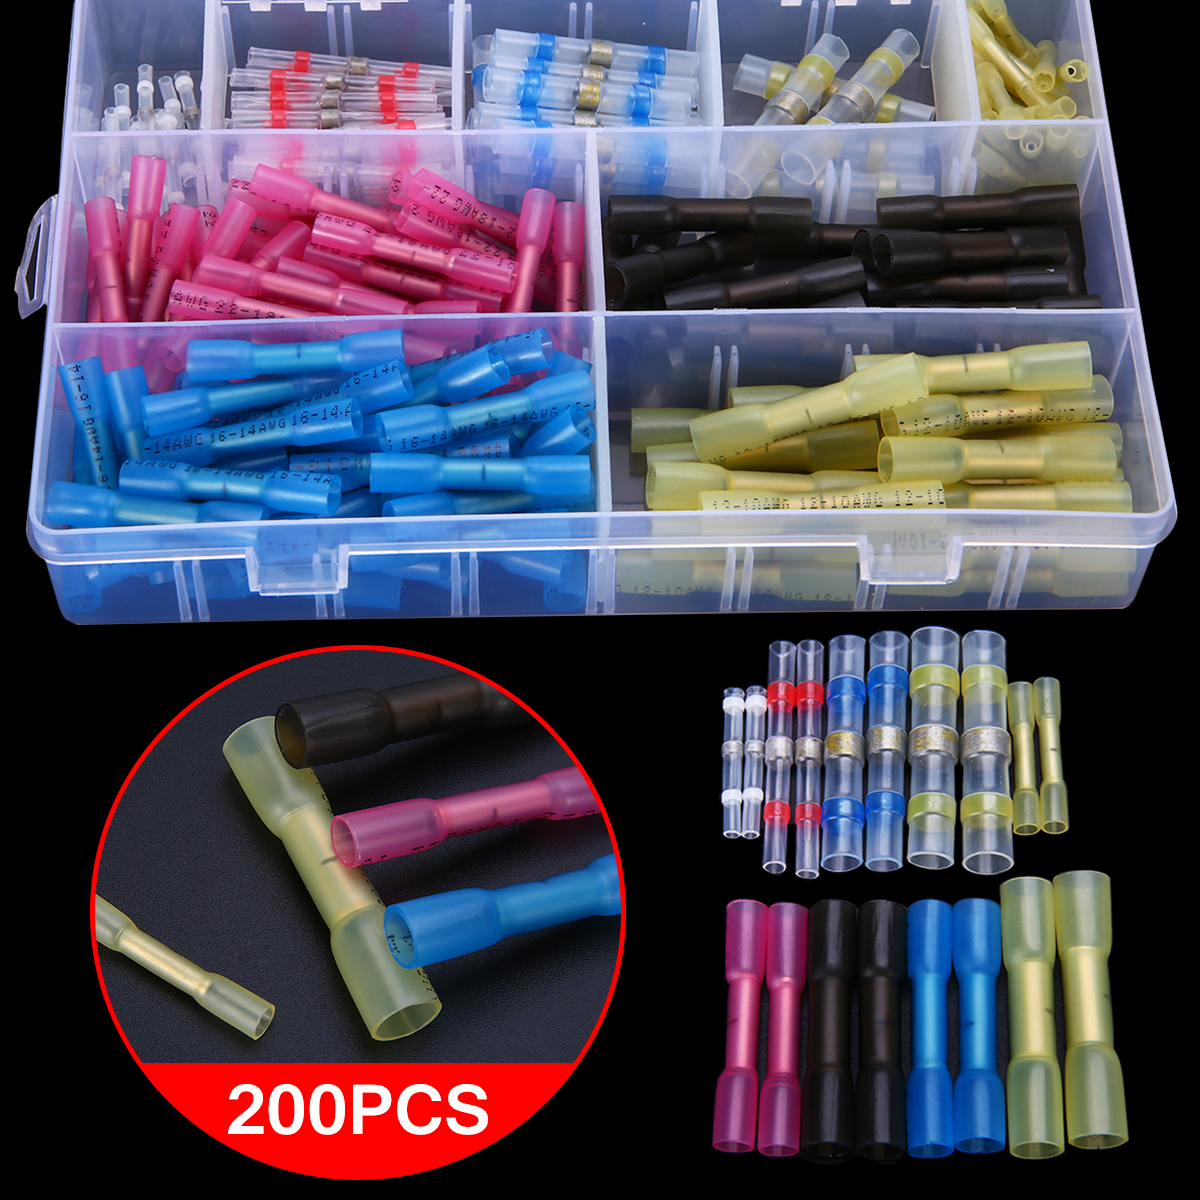 200pcs Insulated Heat Shrink Terminals Waterproof Heat Shrink Wire Butt Connectors Soldering Connectors Assortment kit with Box 200pcs mixed heat shrink terminals solder sleeve tube electrical insulated butt connectors with box 16 14awg kit